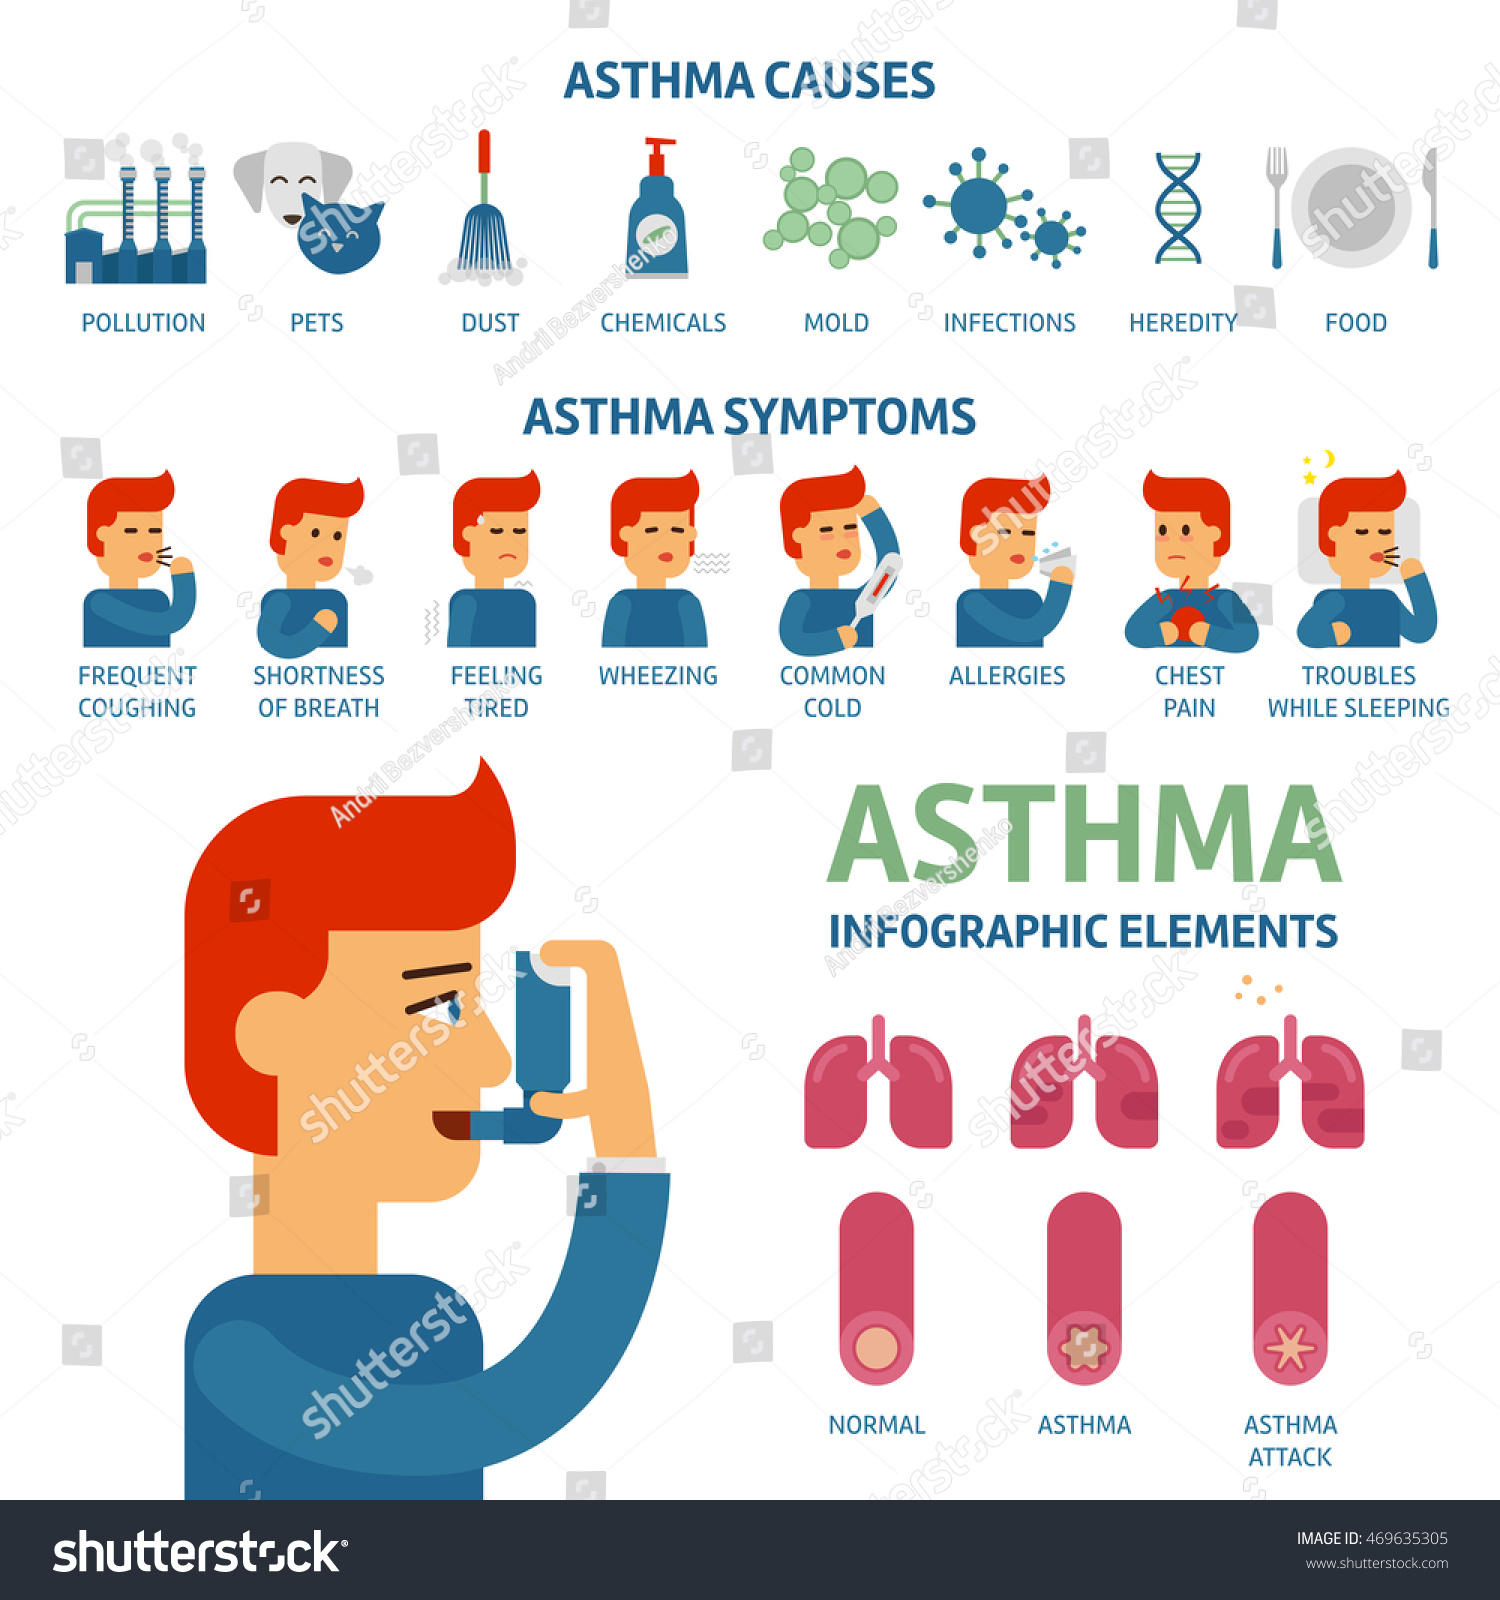 the causes and treatment for asthma Overview of asthma symptoms, asthma diagnosis, asthma treatment and asthma management written by the leading experts in allergy, asthma and immunology.